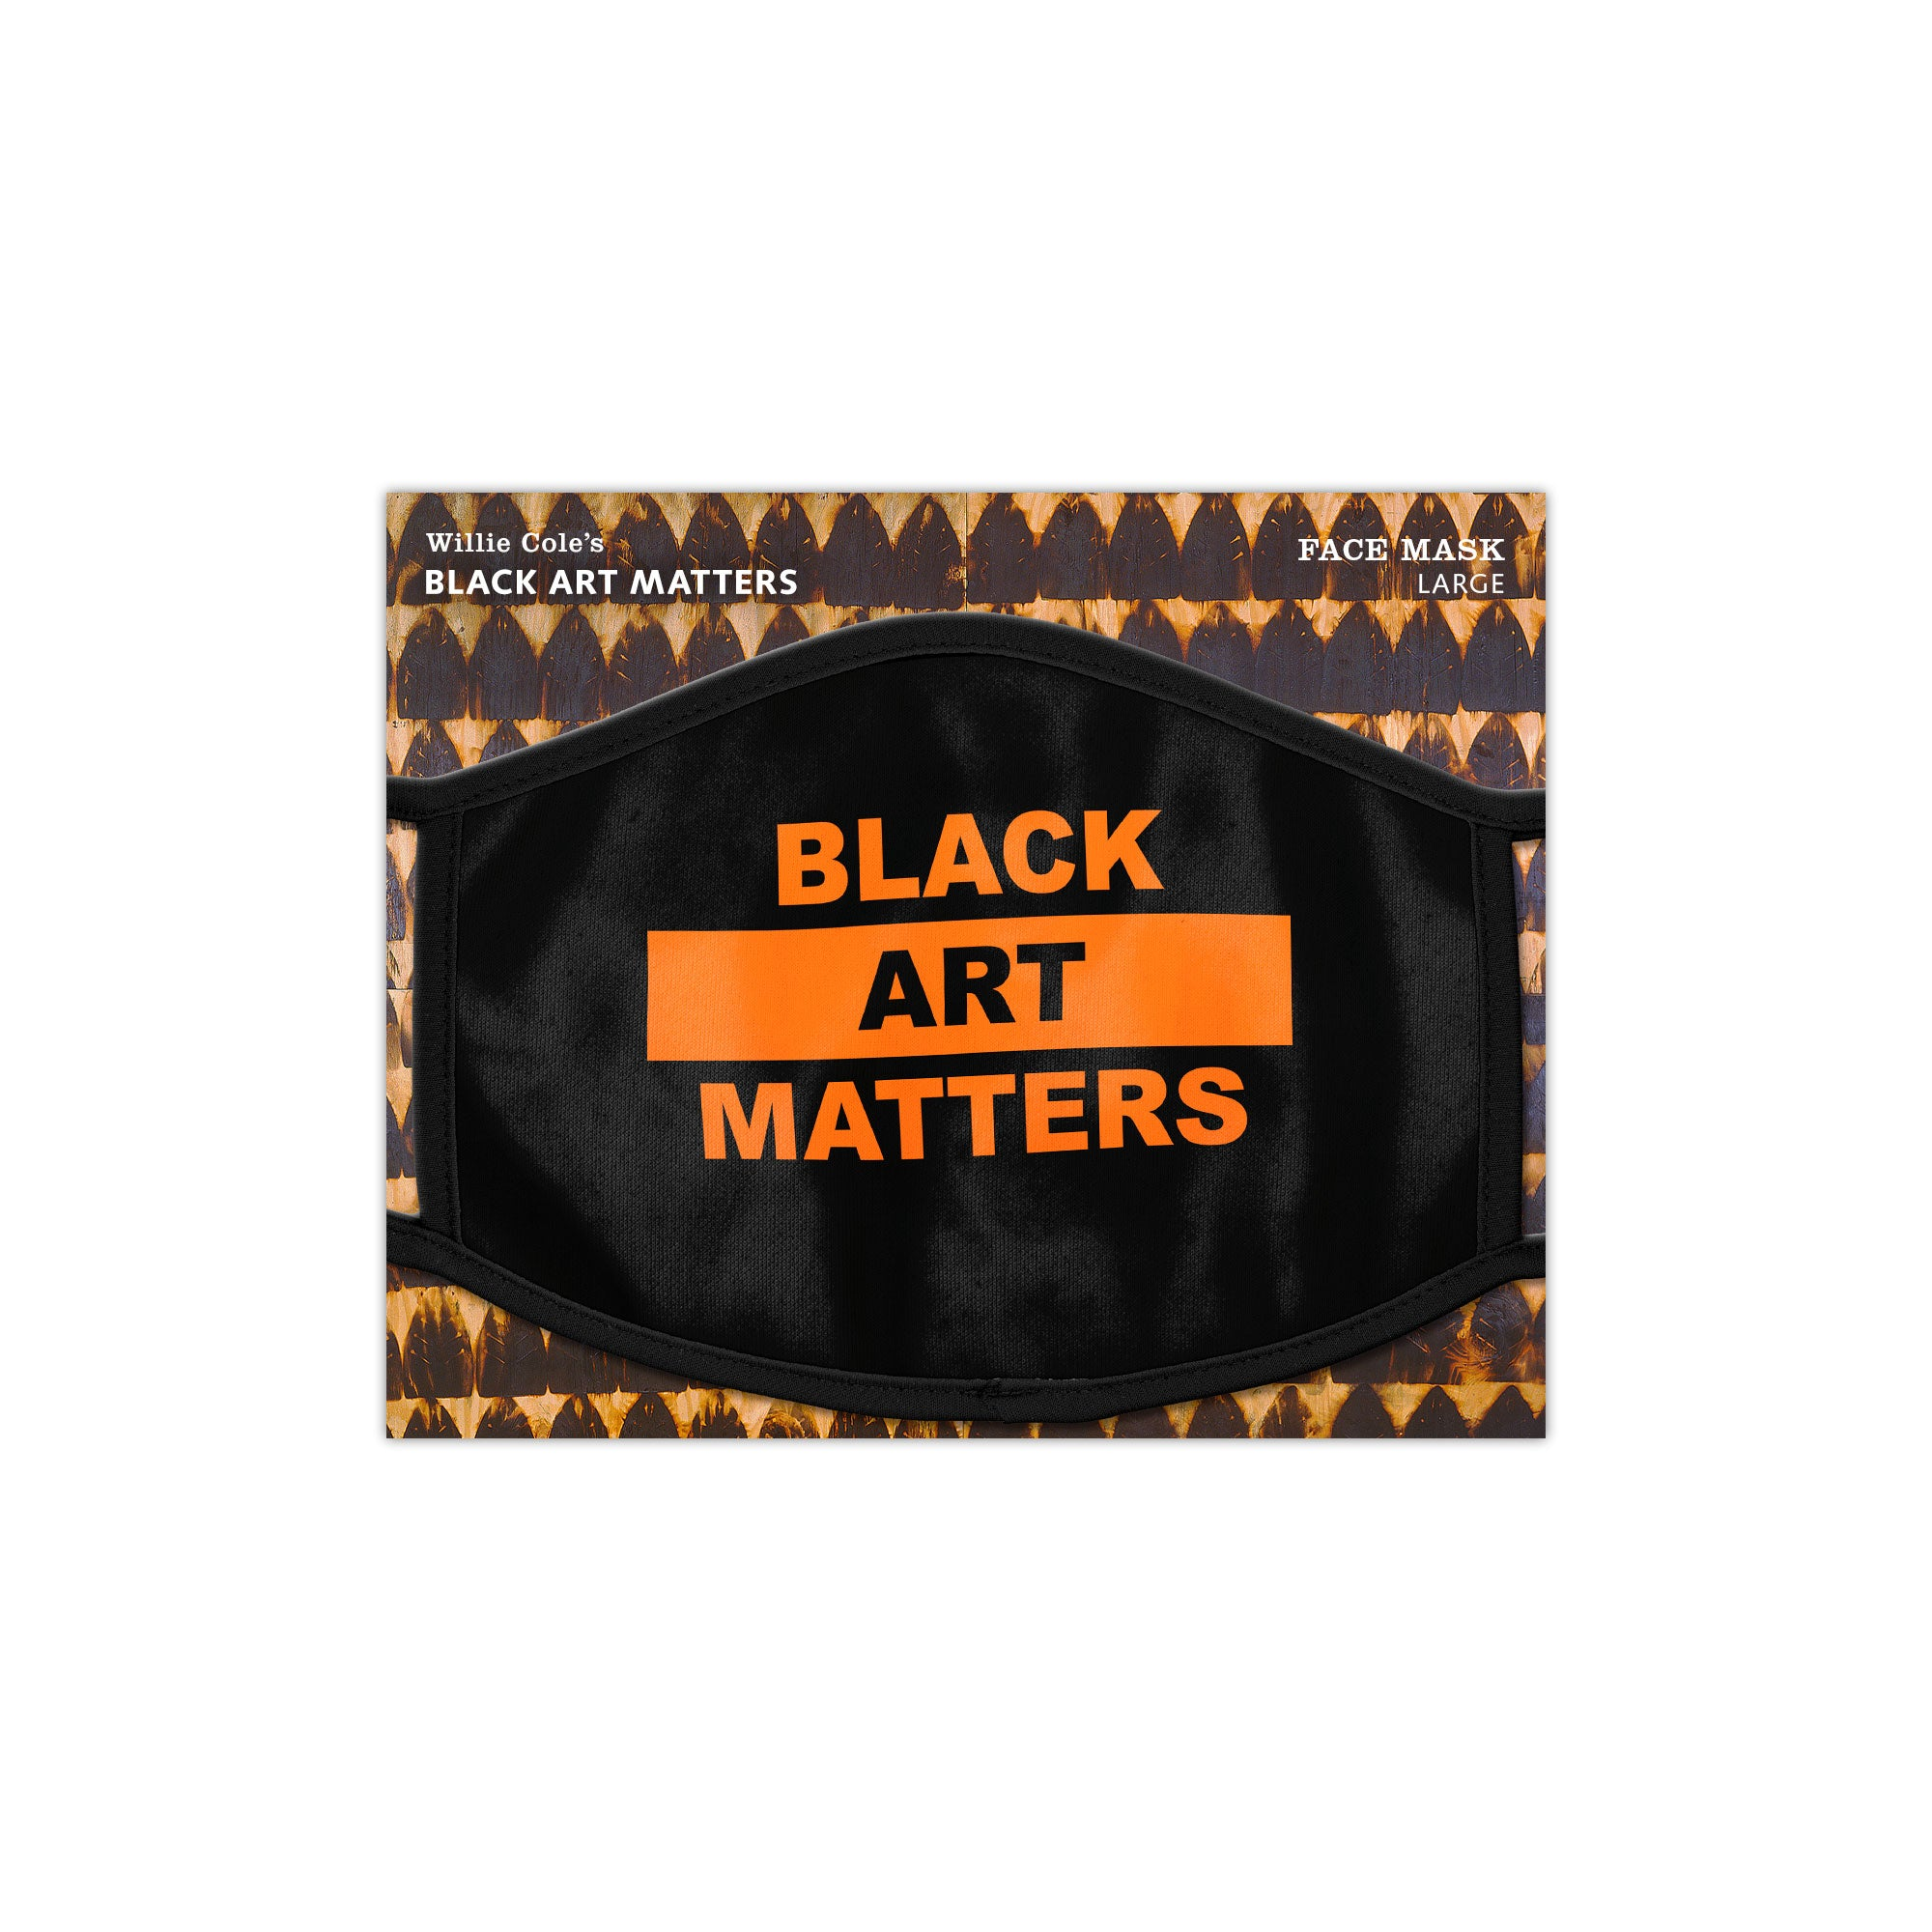 Willie Cole Black Art Matters Face Mask